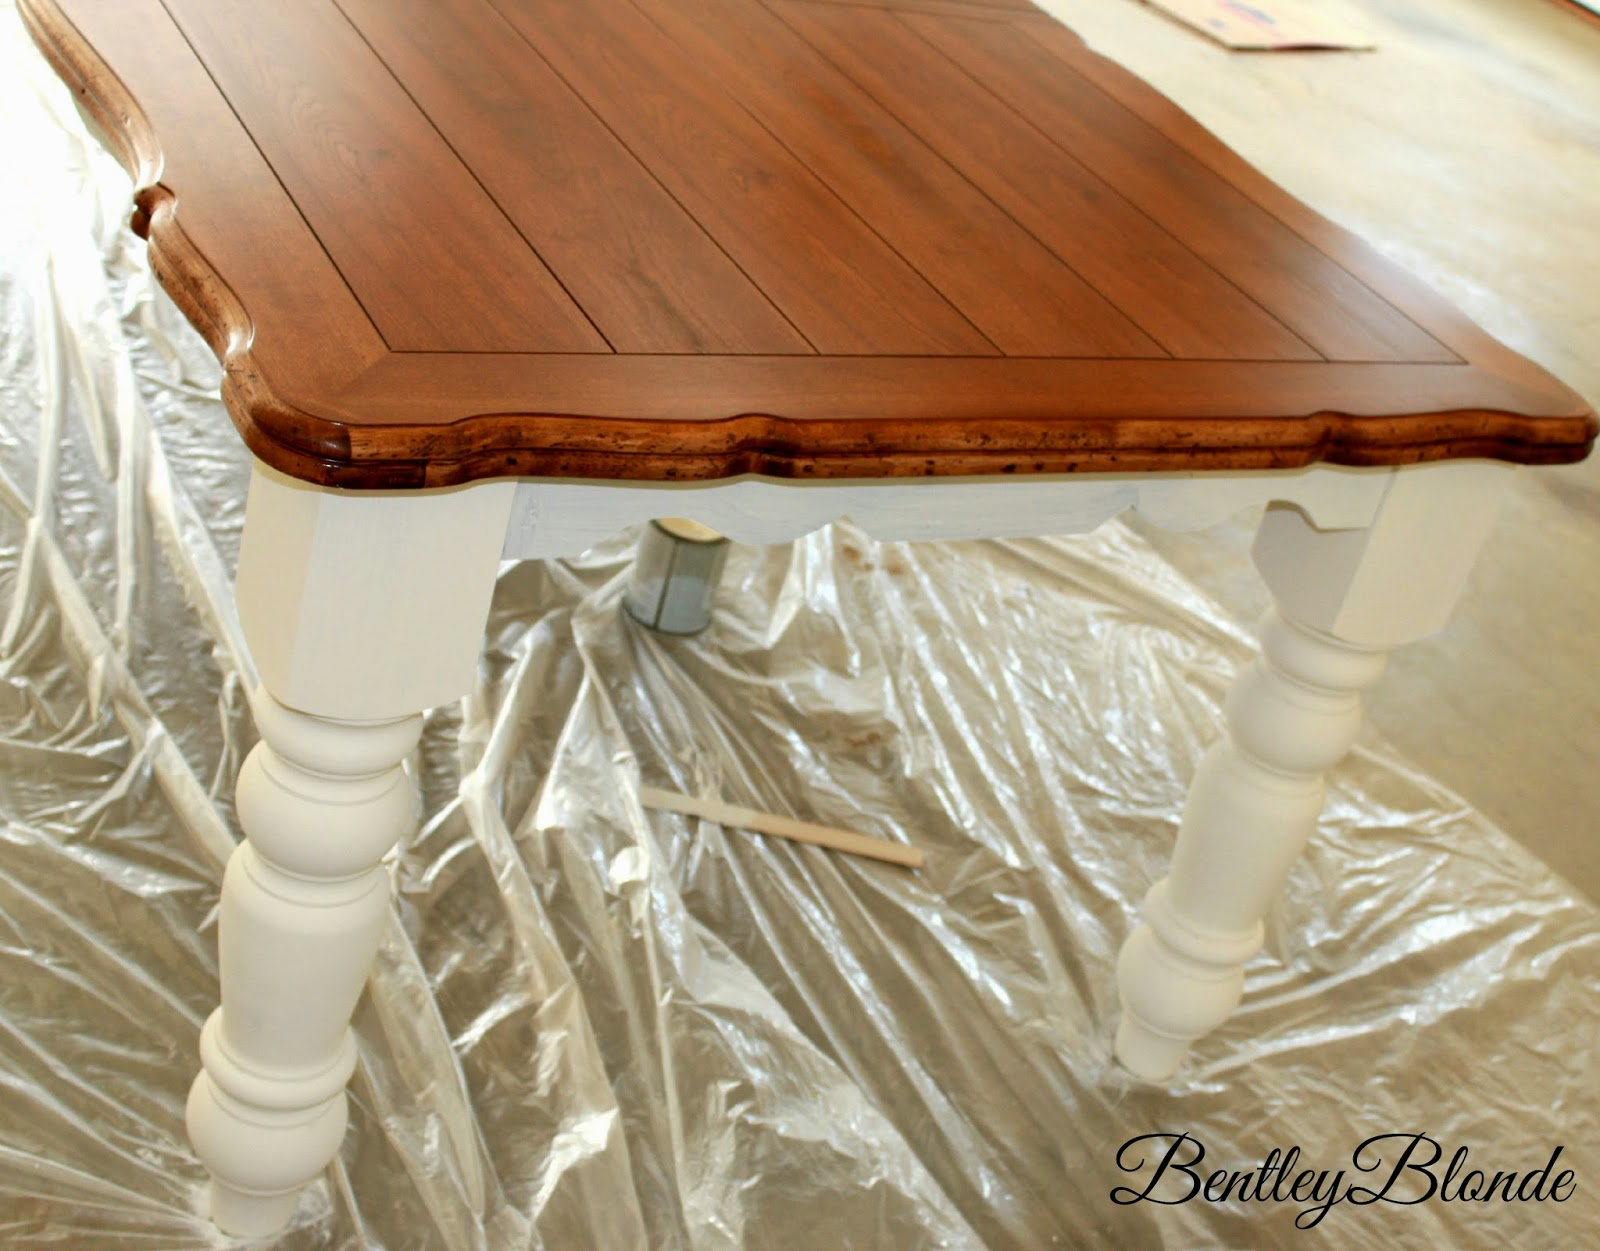 Fabulous Bentleyblonde Diy Farmhouse Table Dining Set Makeover Download Free Architecture Designs Grimeyleaguecom